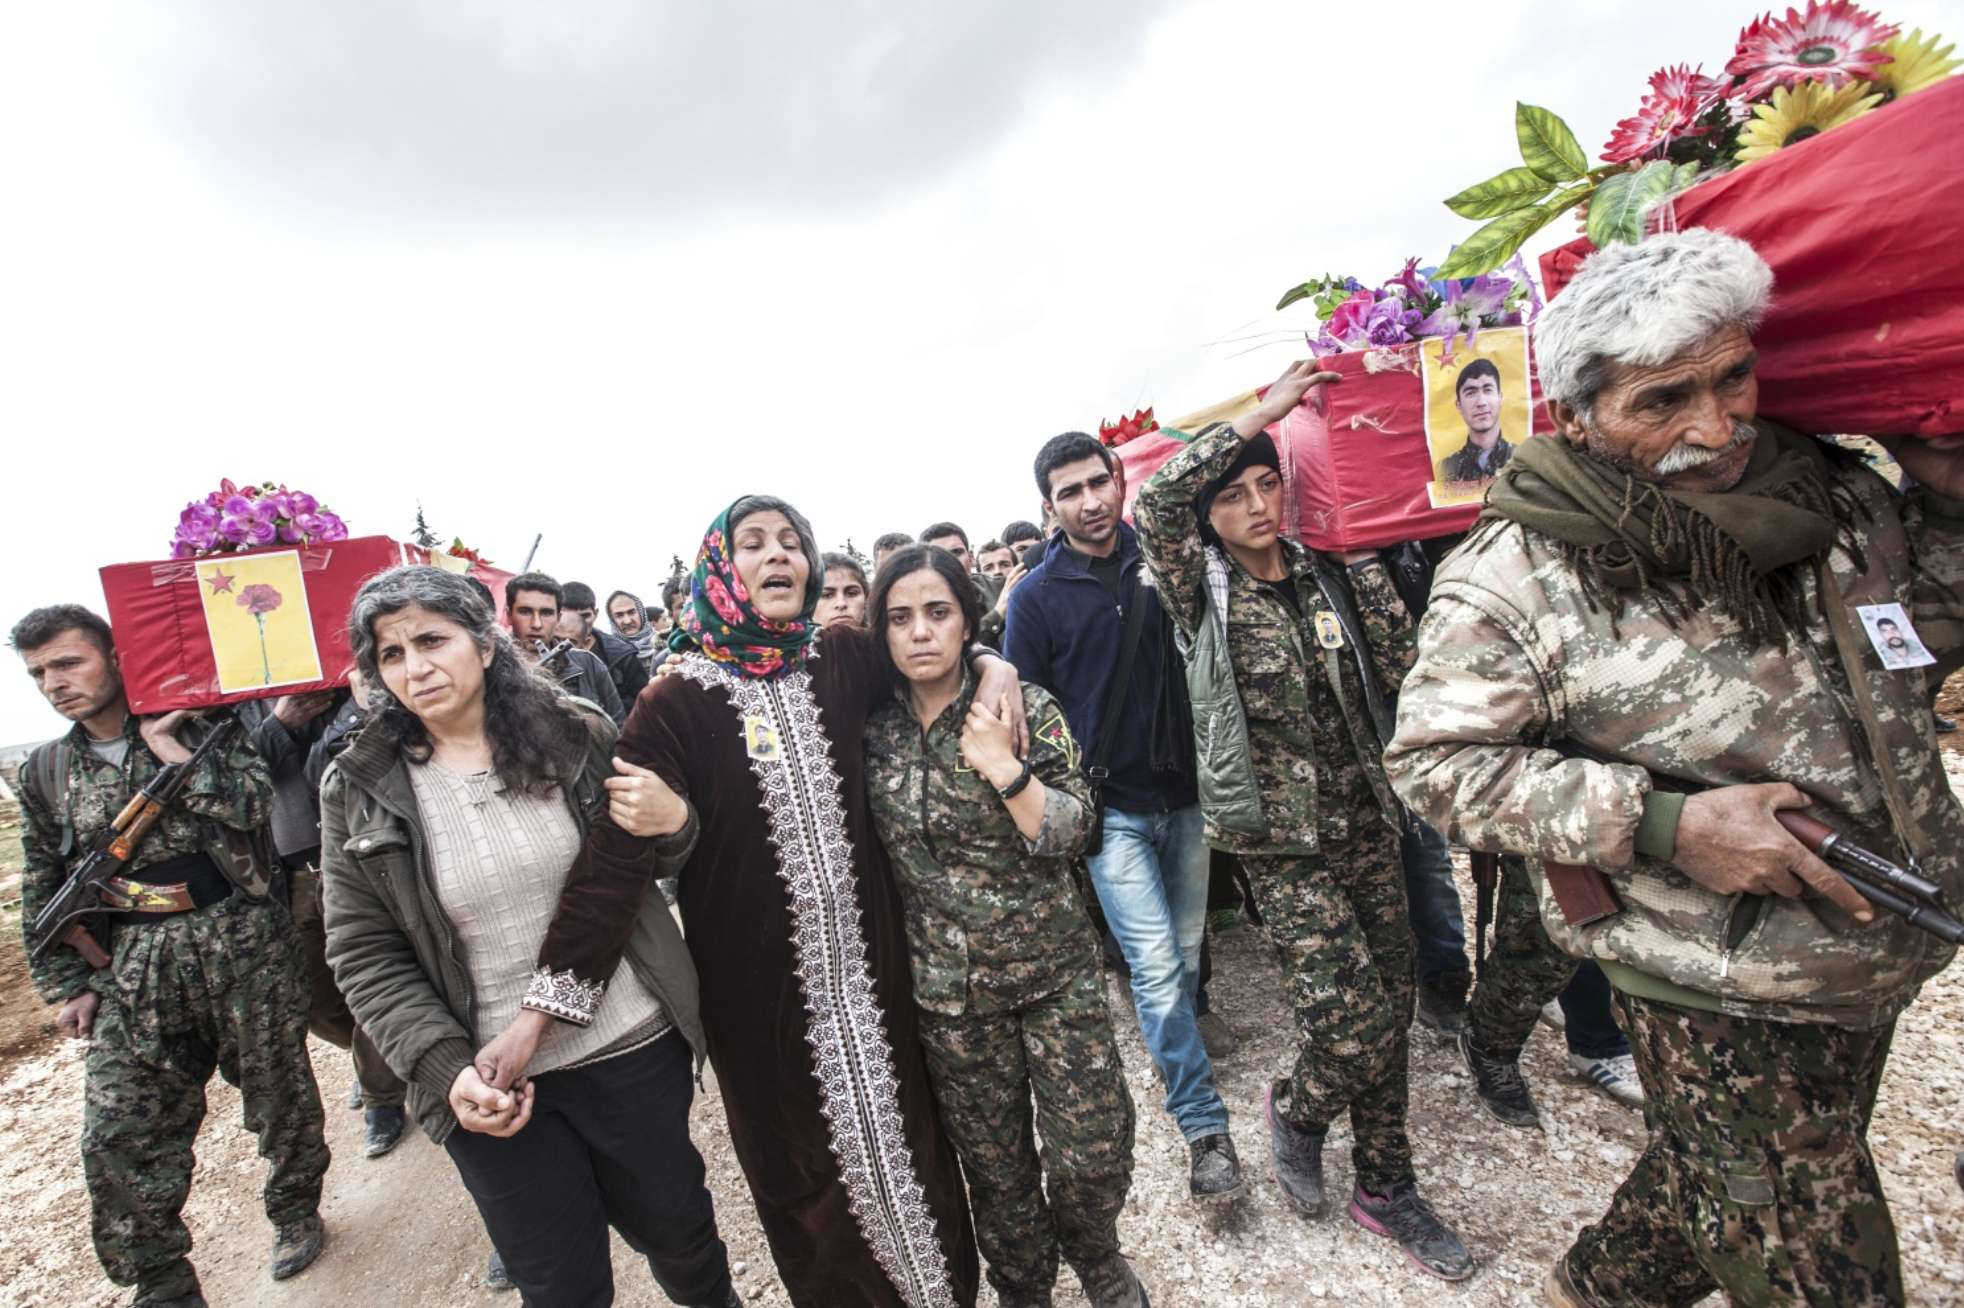 Syrian Funeral Procession